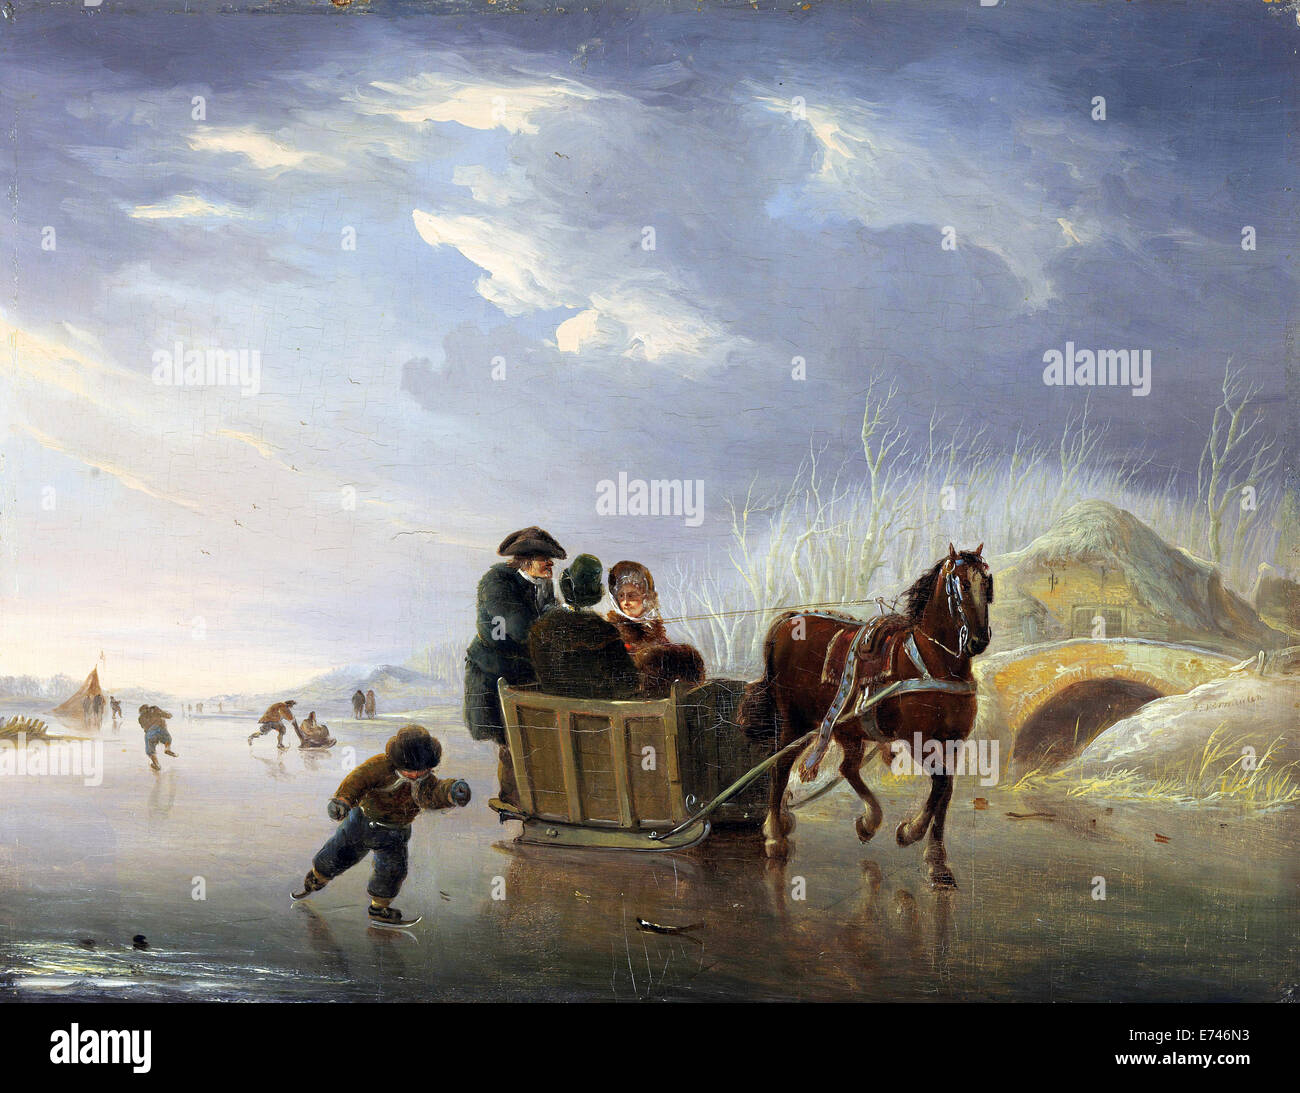 Sleigh Race on the Ice - by Andries Vermeulen, 1790 - 1814 - Stock Image